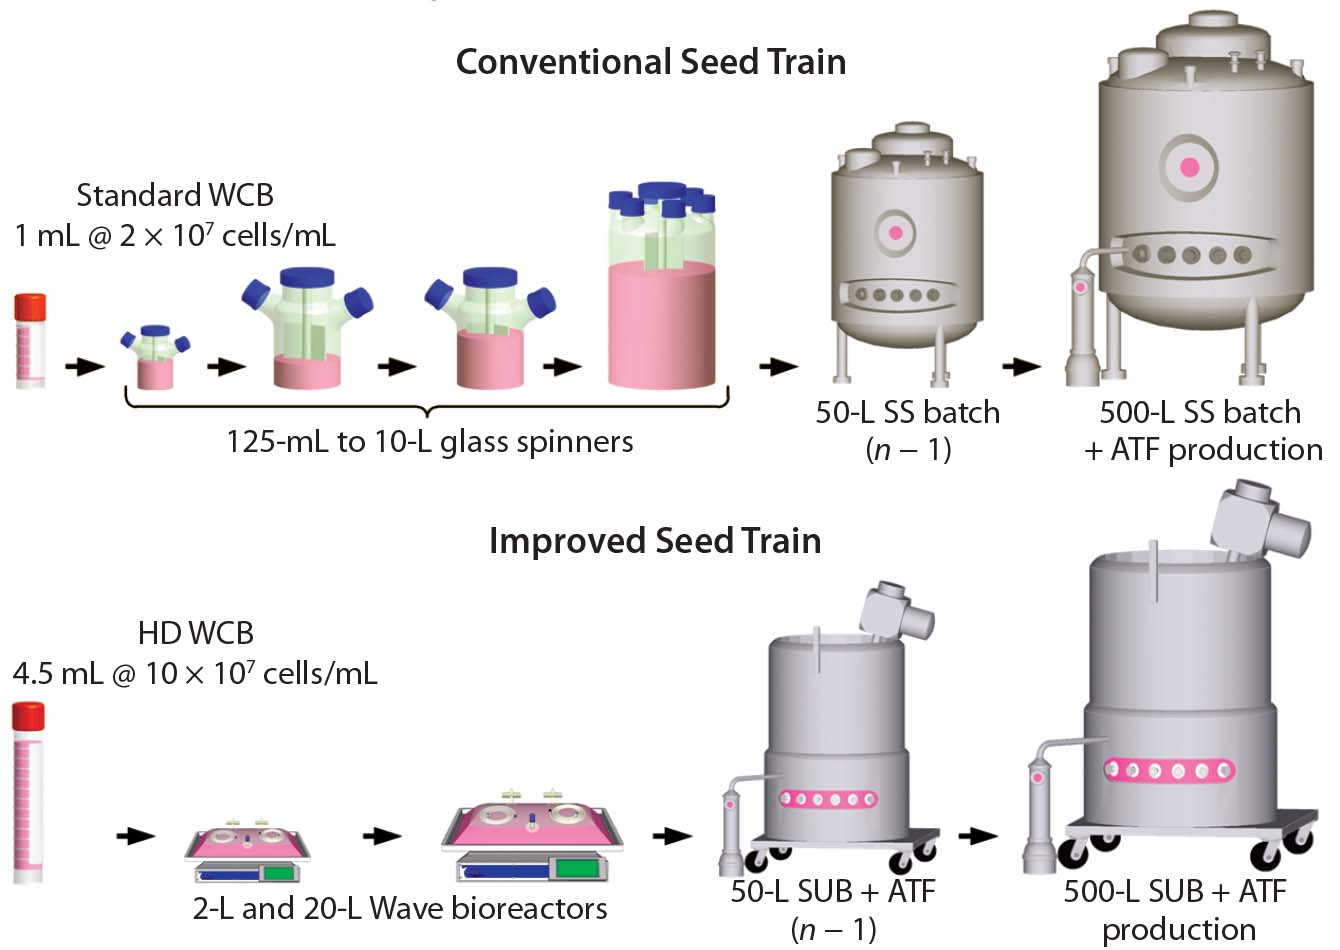 A Novel Seed Train Process Using High Density Cell